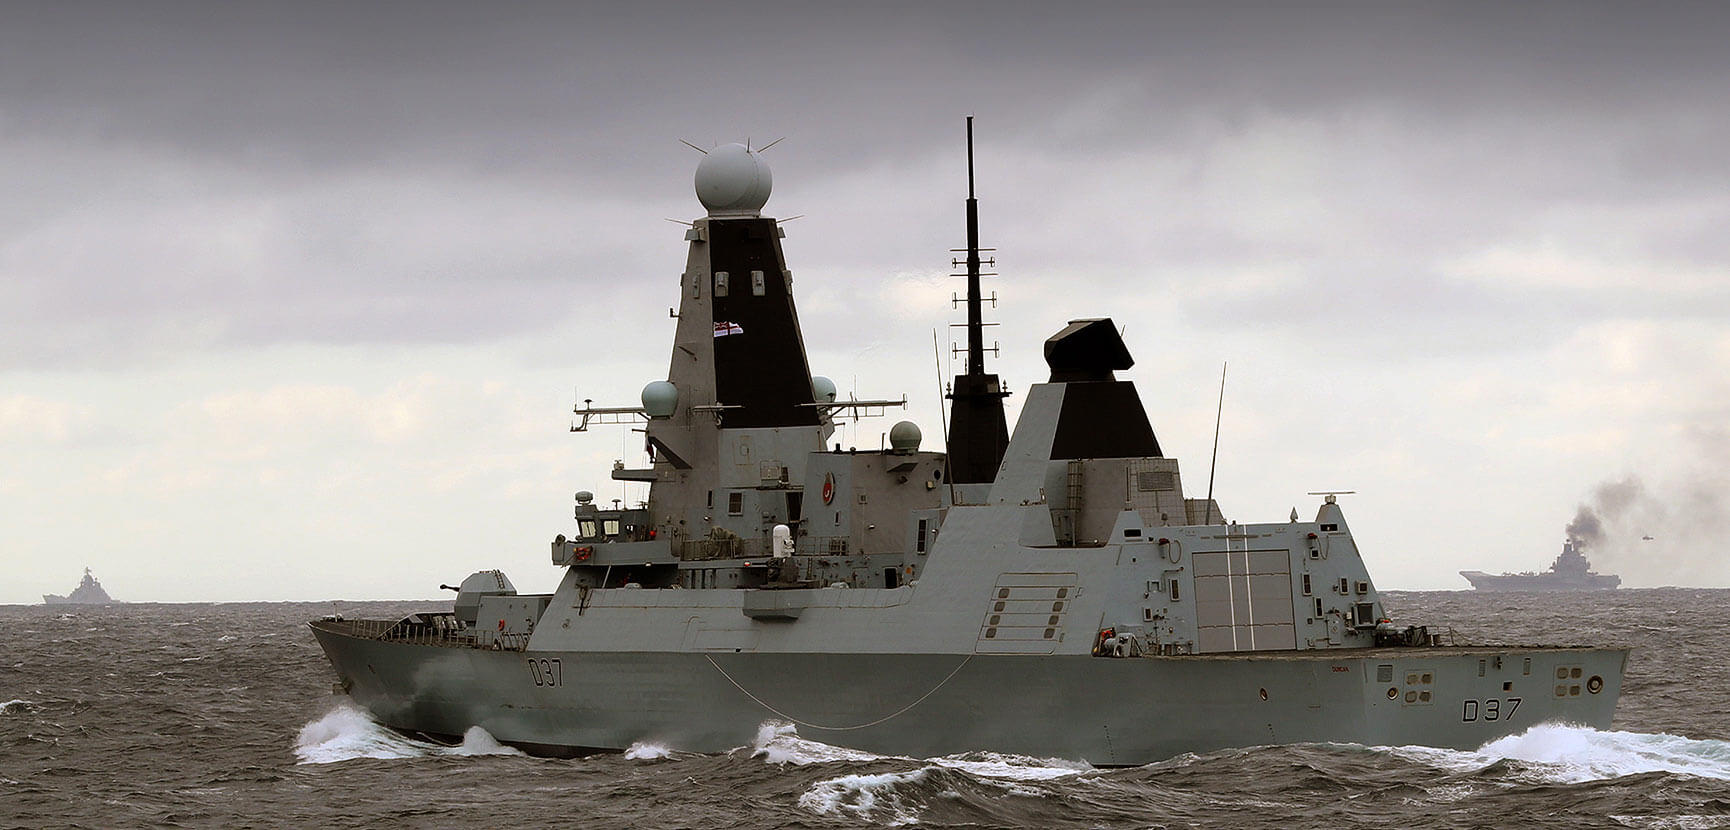 The Royal Navy – quietly getting on with the job